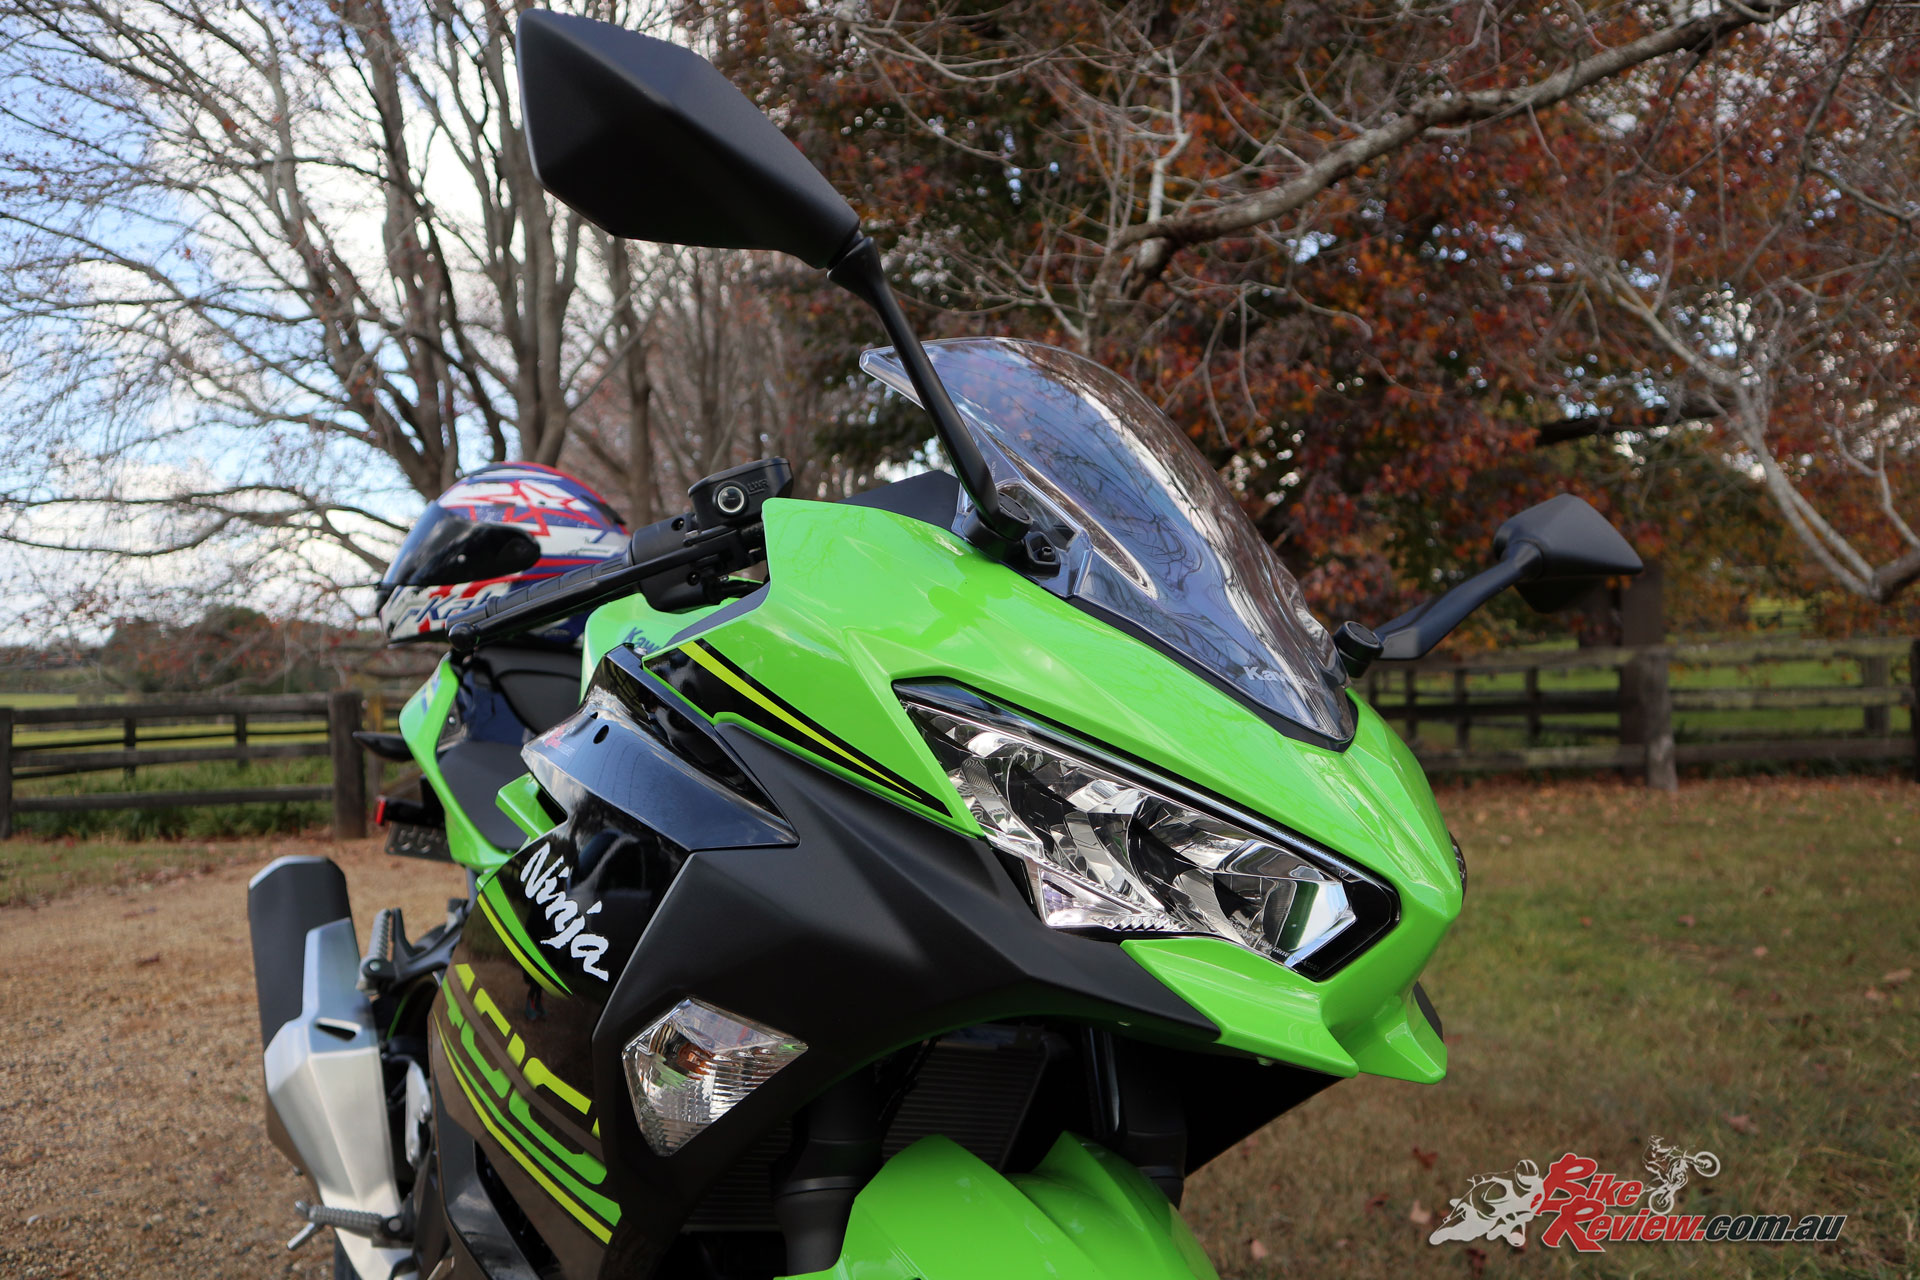 There's very little to criticise really, the Ninja 400 is a great little machine